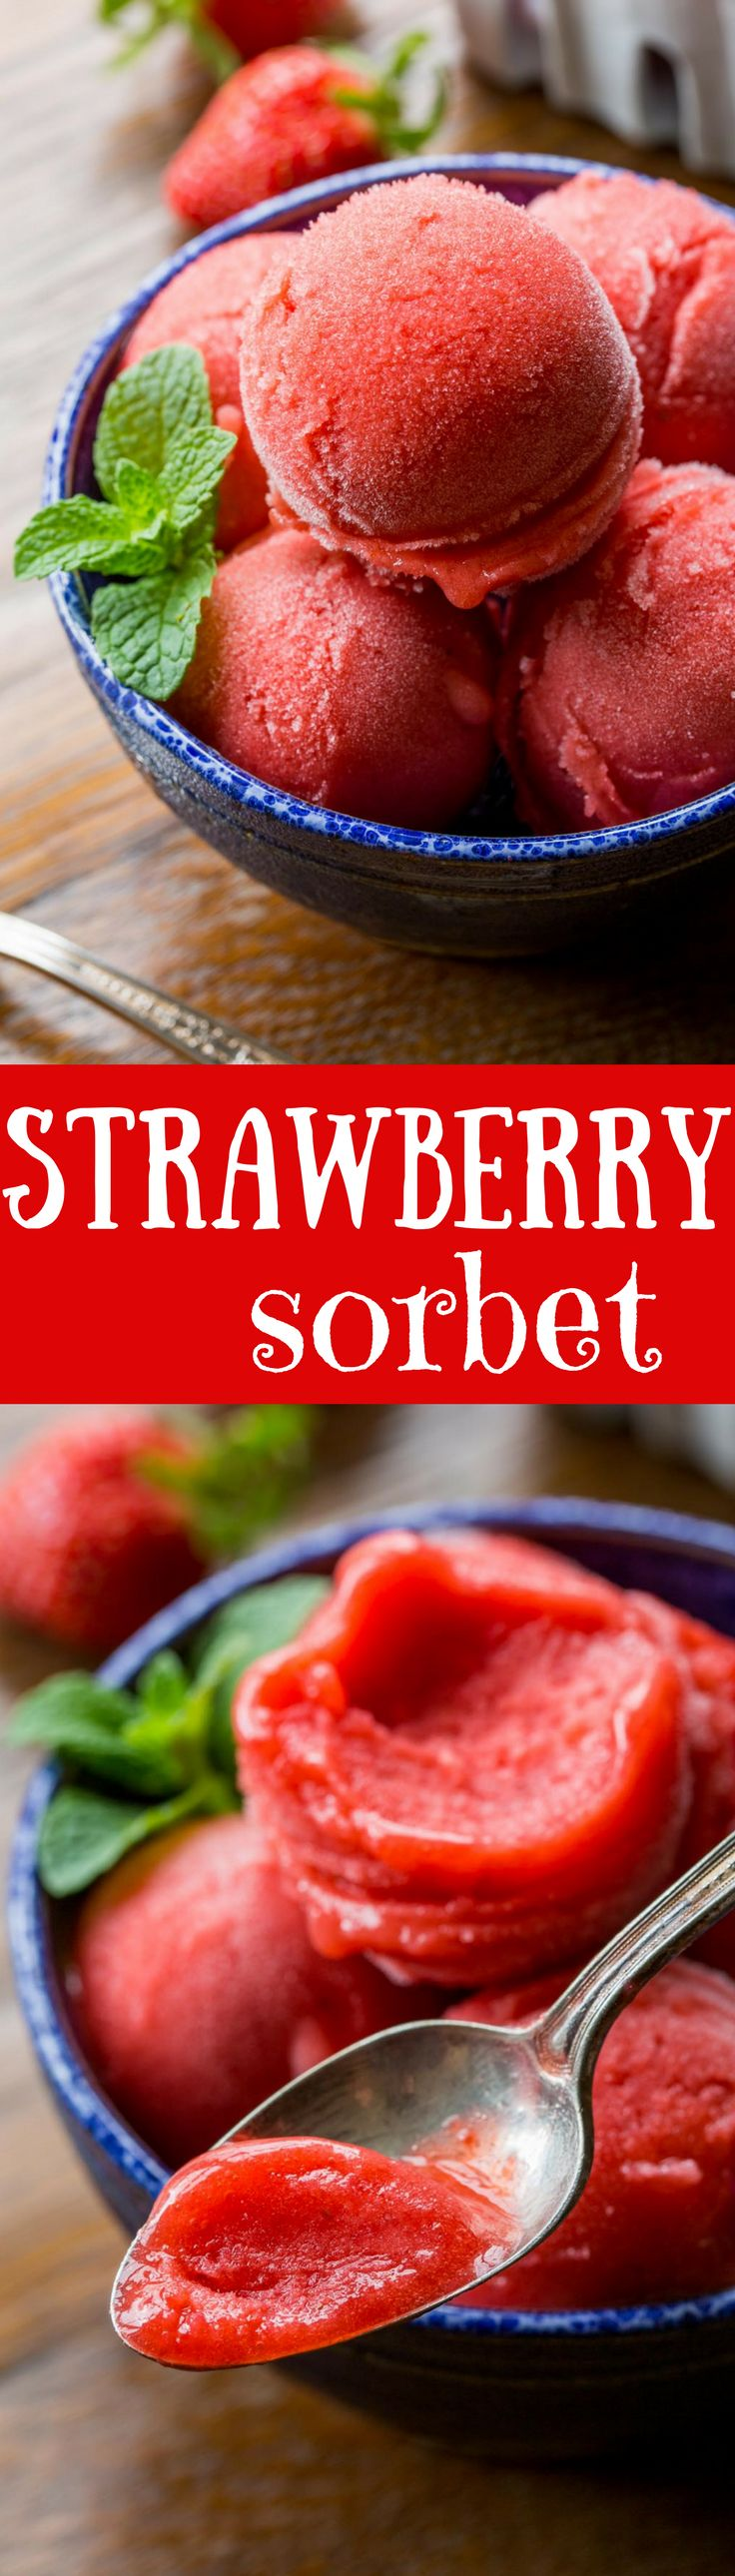 a simple, easy & delicious sorbet made with only 3 ingredients right in your blender then processed in an ice cream maker.